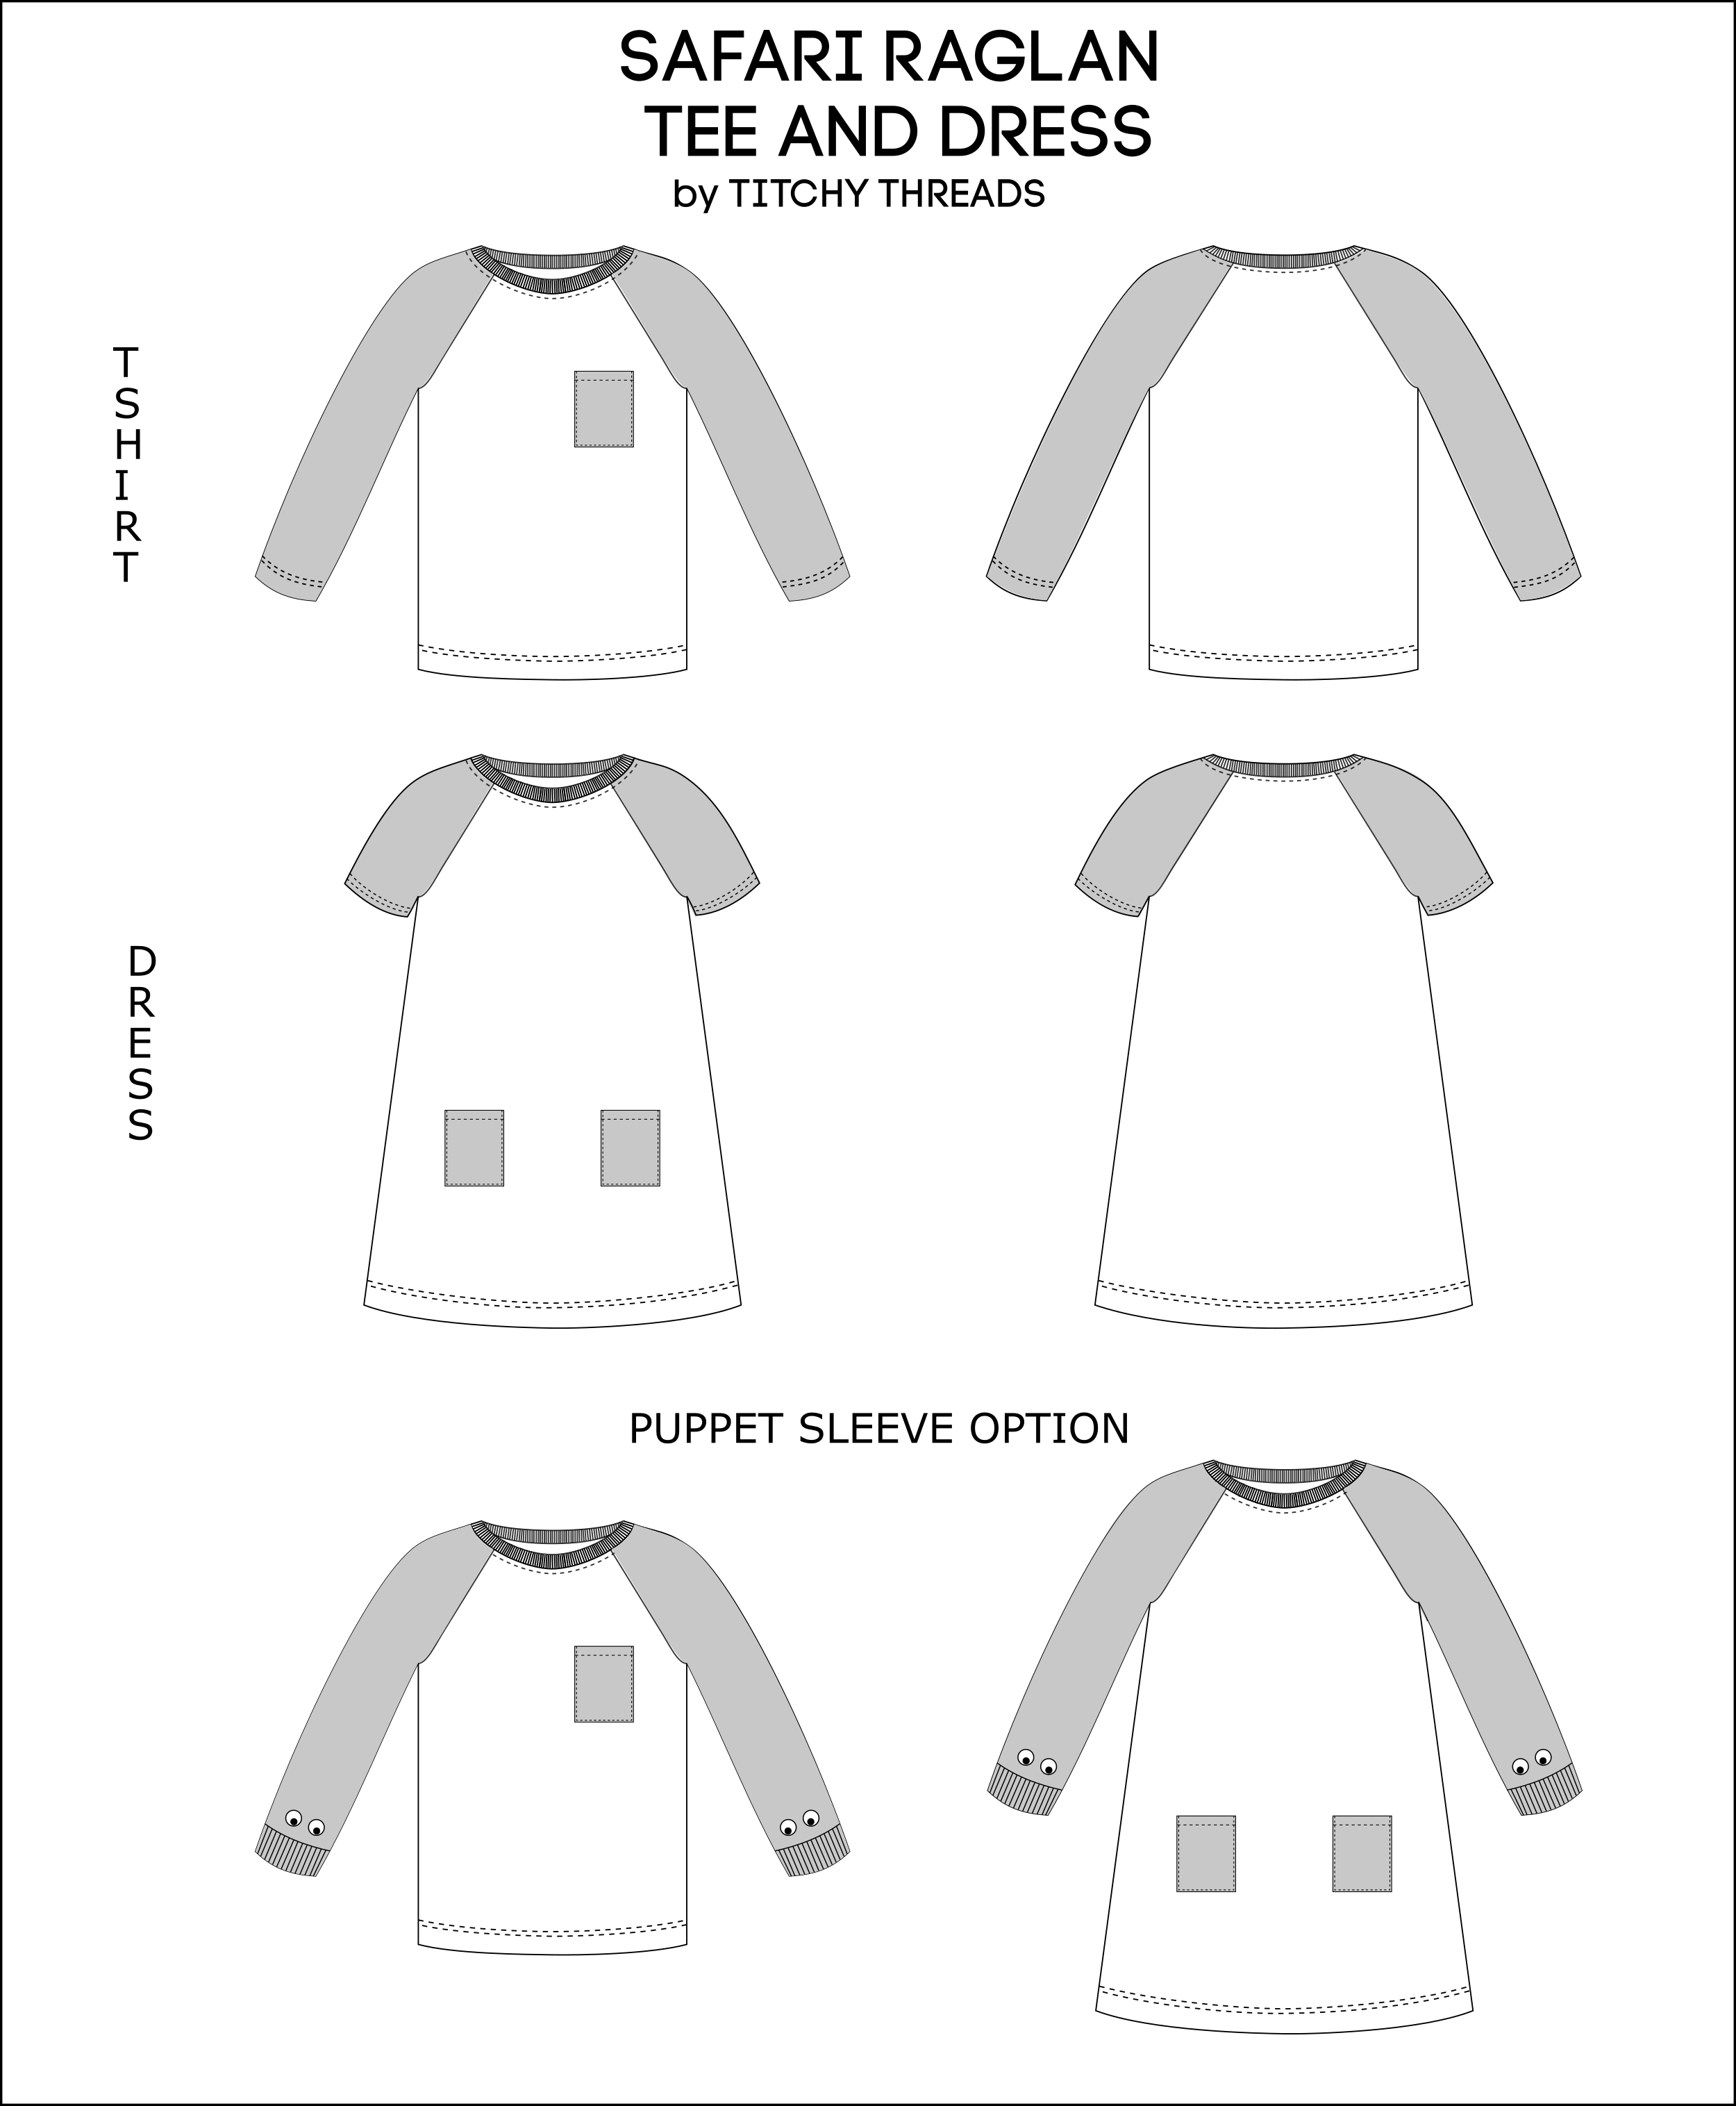 e53a9c4c8 Safari Raglan Tee and Dress - PDF Pattern | Sewing Tutorials ...